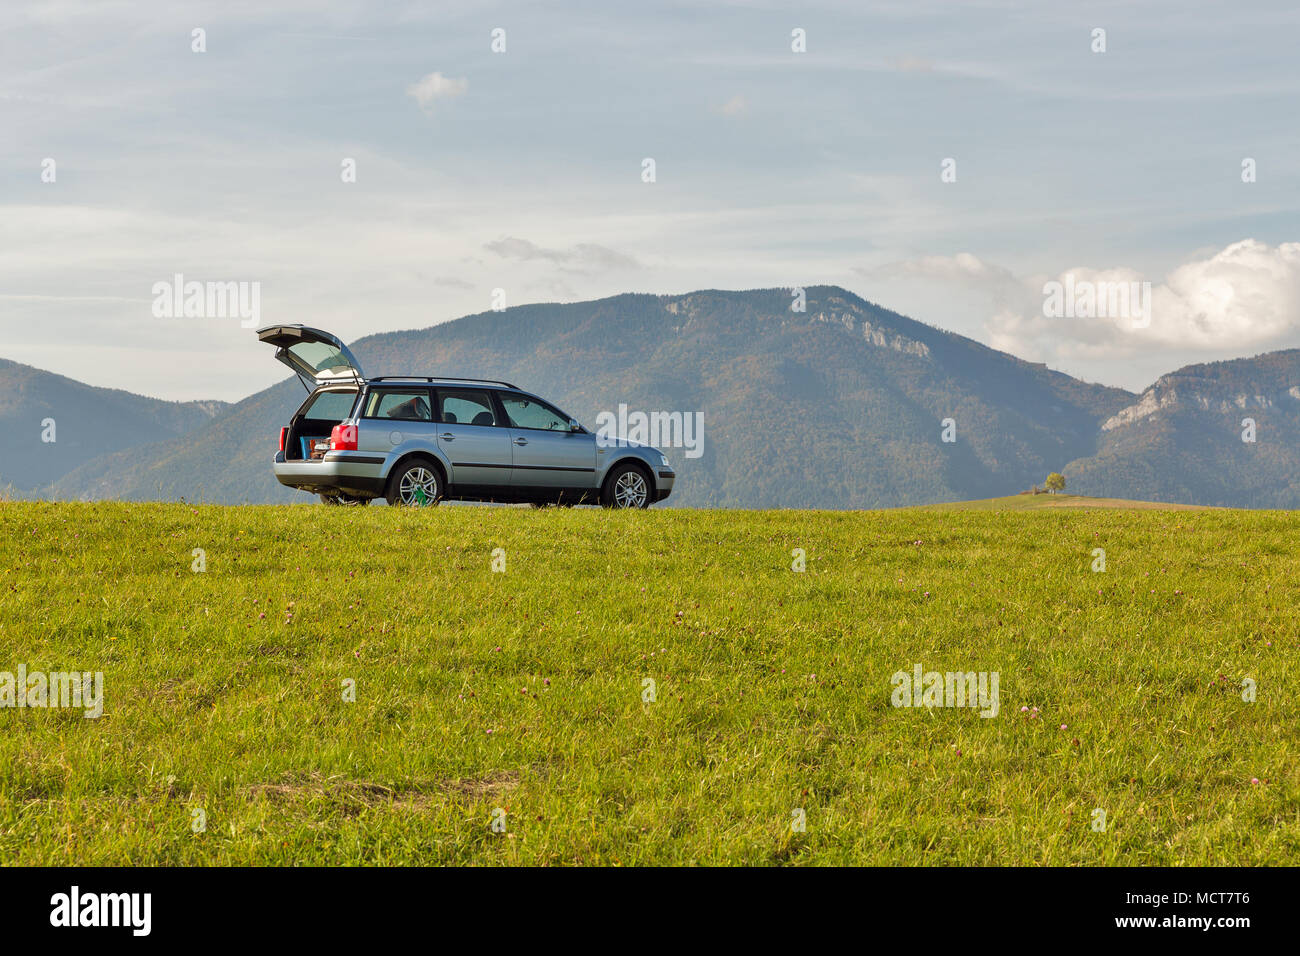 hatchback car with open trunk on the top of the summer hill. blue sky and mountains in the background. - Stock Image